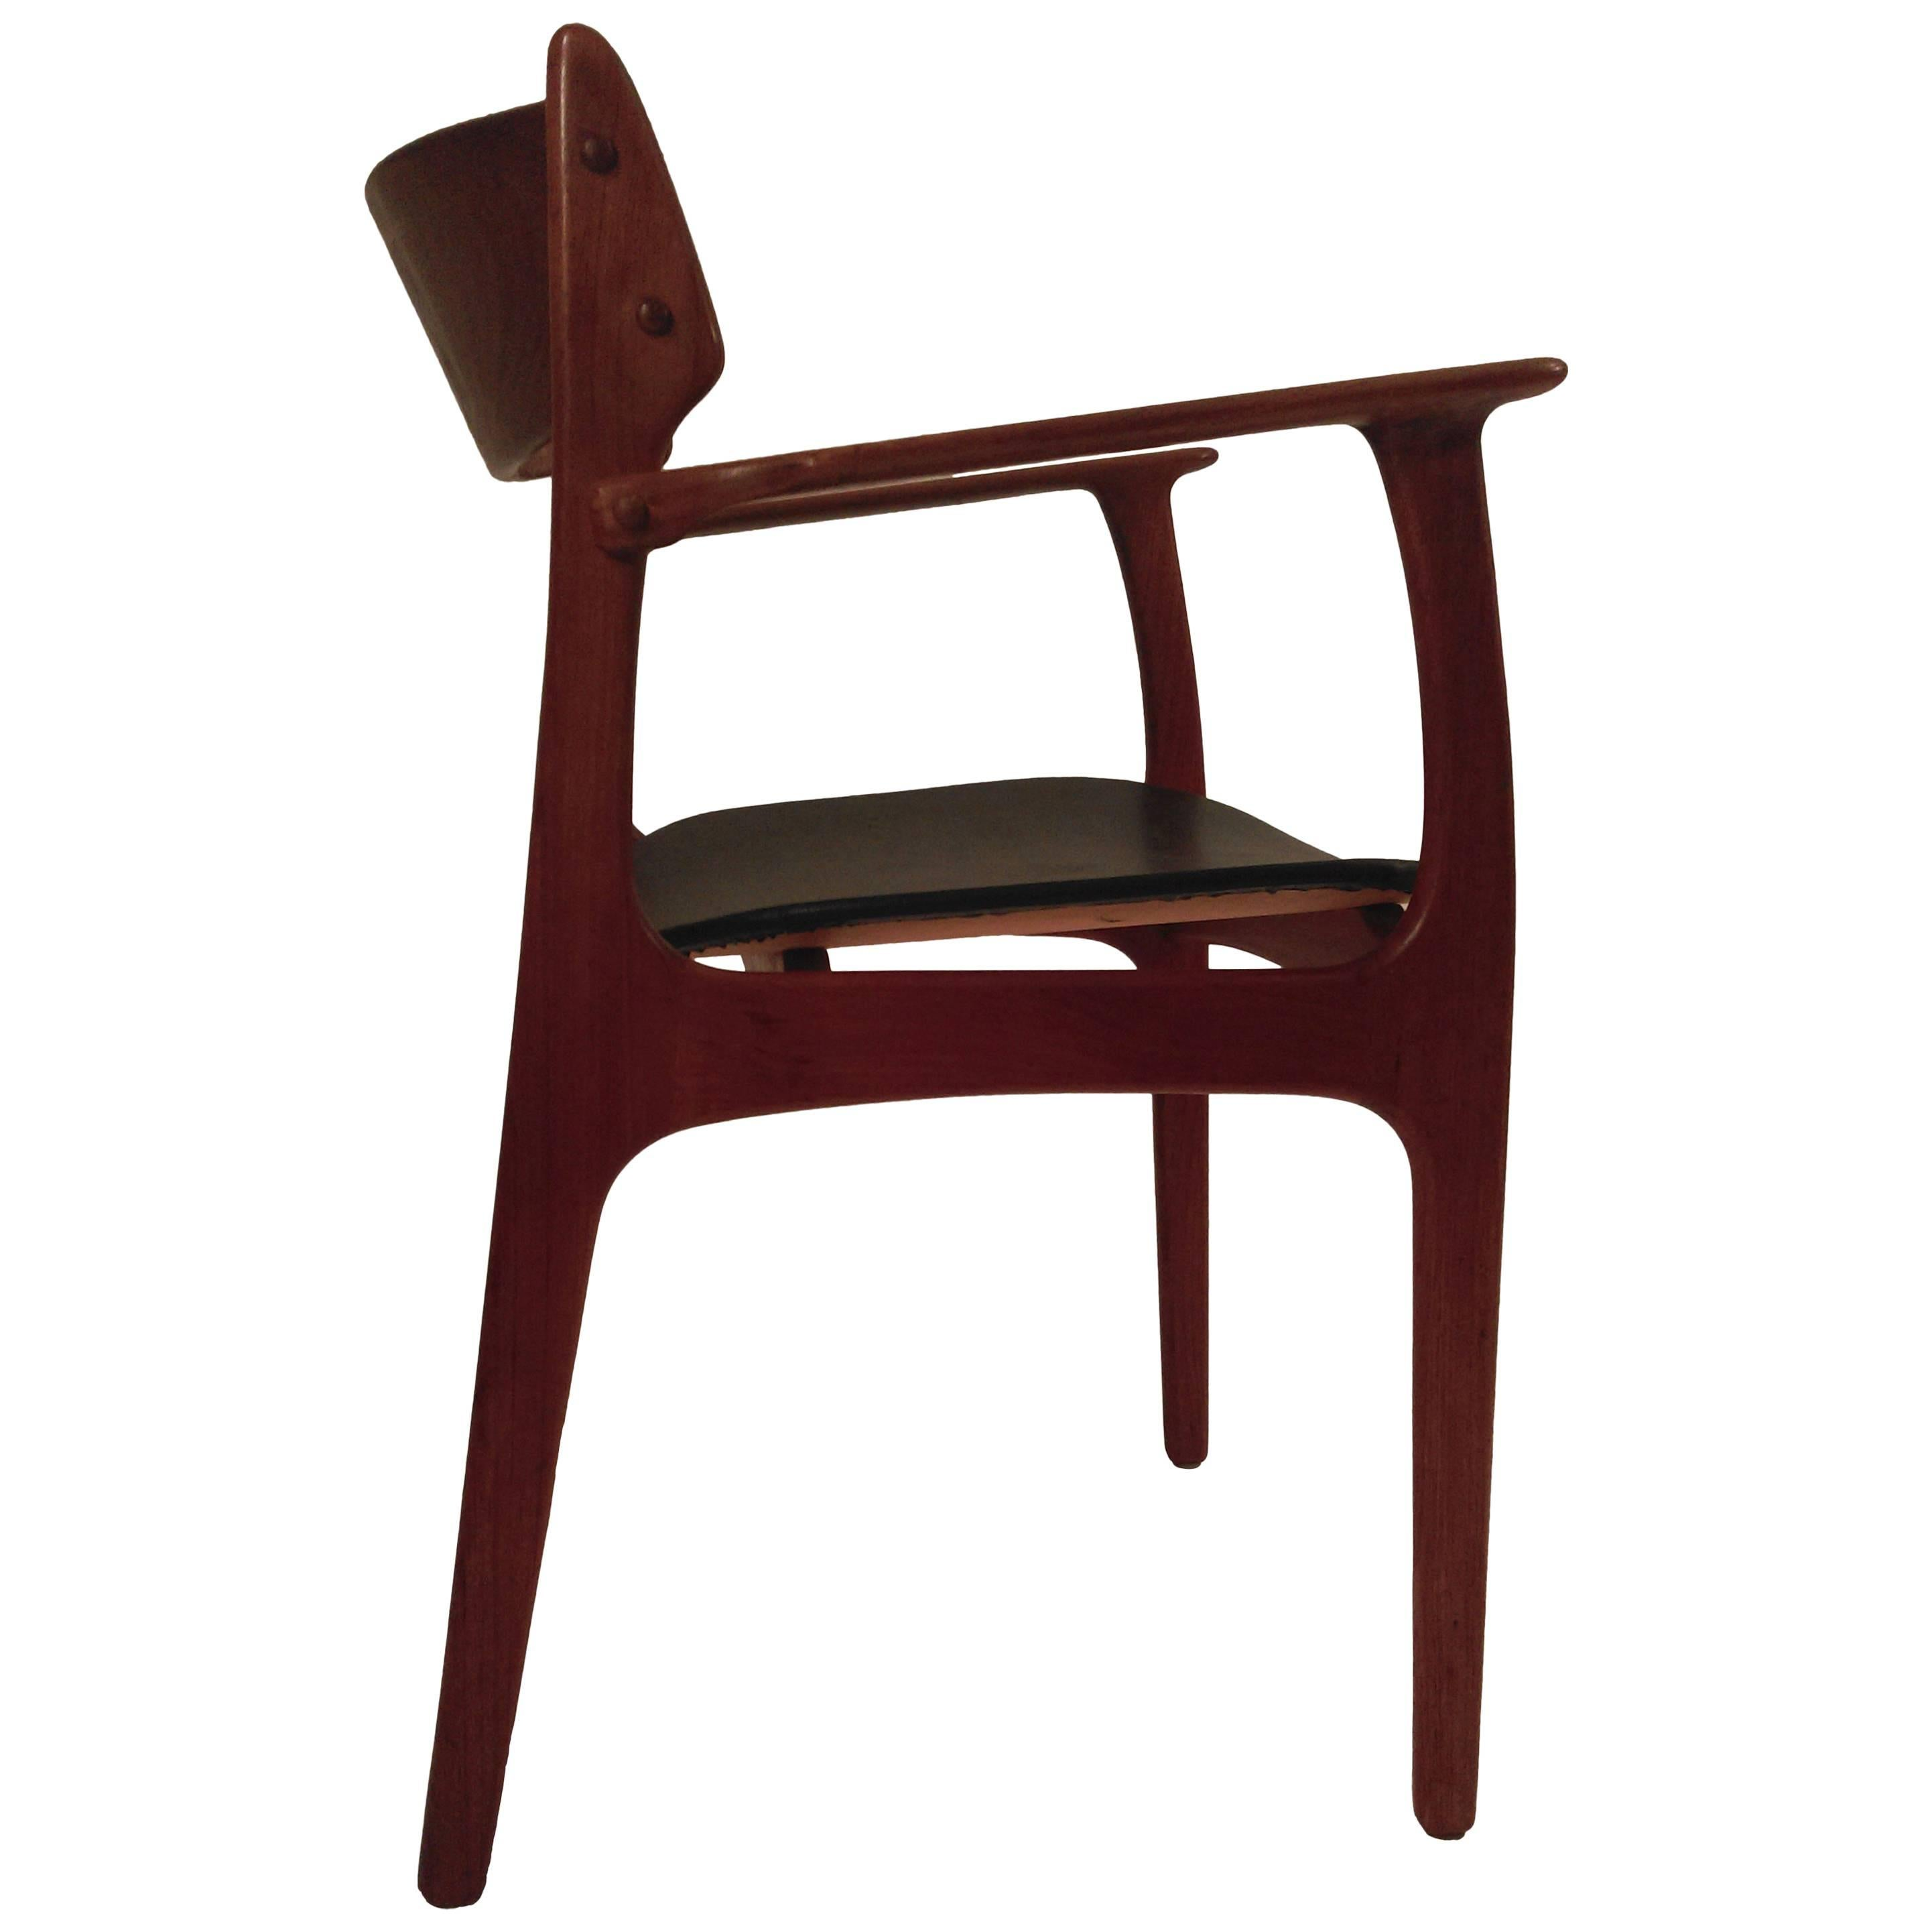 1950s Erik Buch Refinished Model 50 Armchair in Teak Inc. Reupholstery